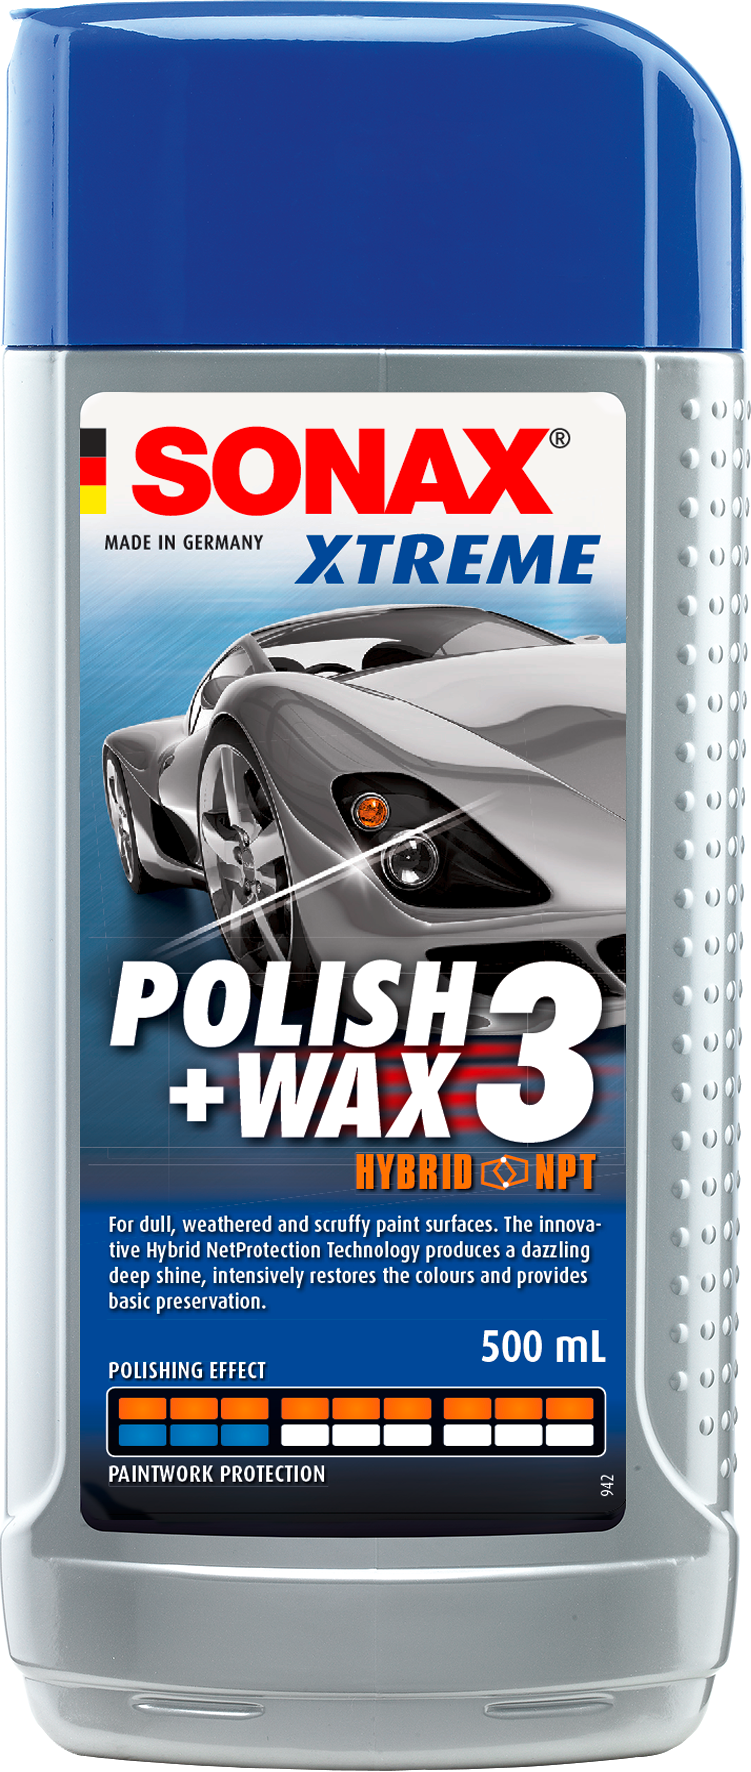 XTREME Polish + Wax 3 Hybrid NPT, older weathered paintwork.